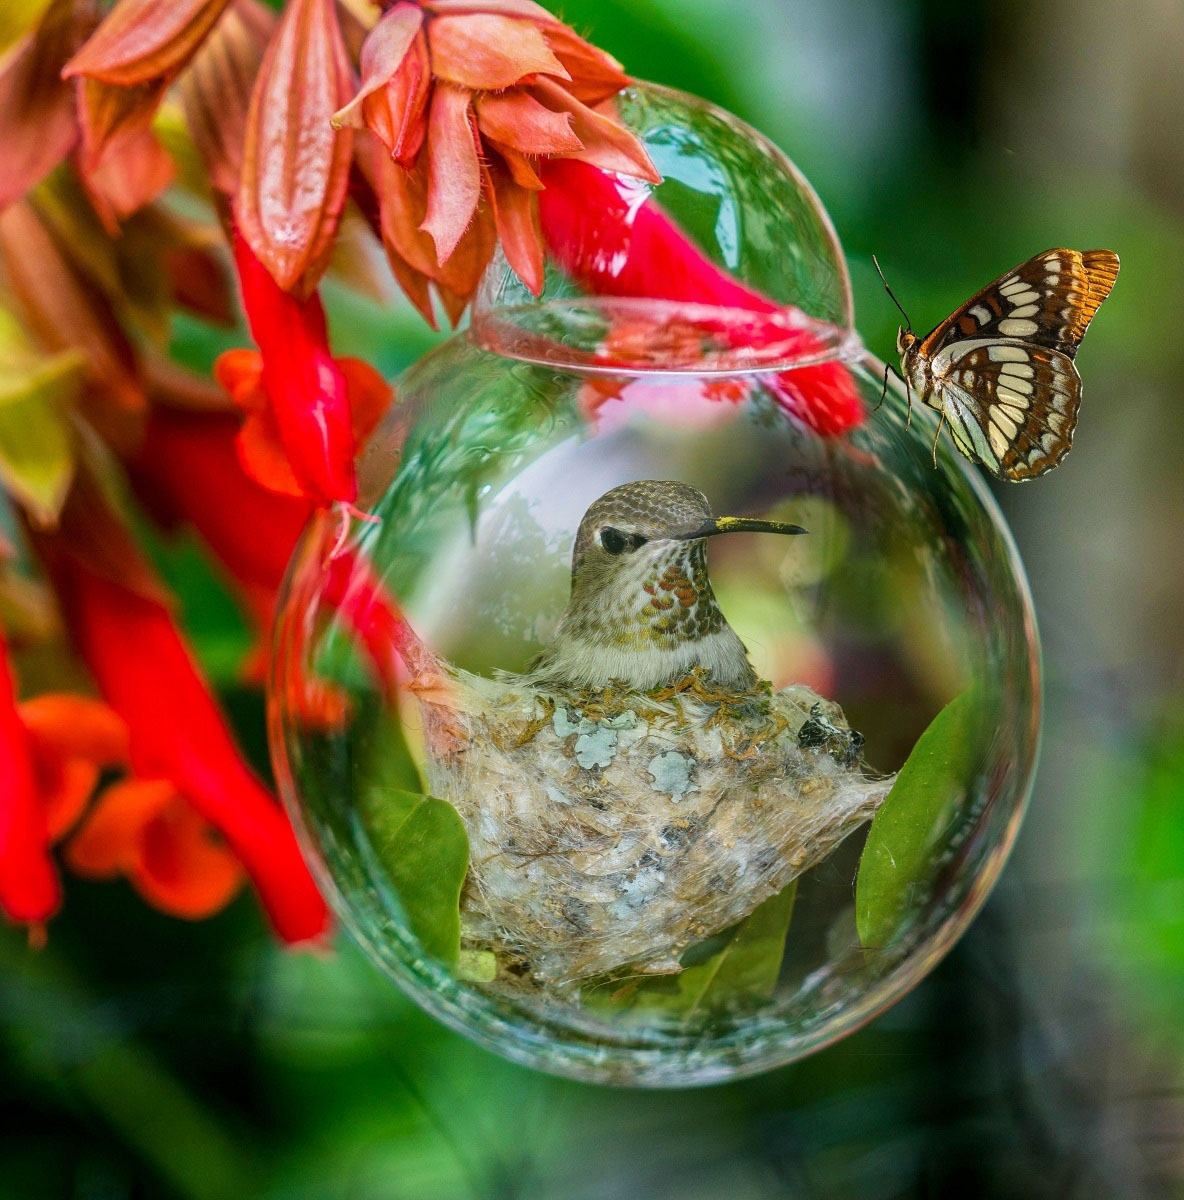 'Butterfly Lands On Bubble That Hummingbird Is Imprisoned Within' (CI 1 Place) by Sharon Anderson - CC